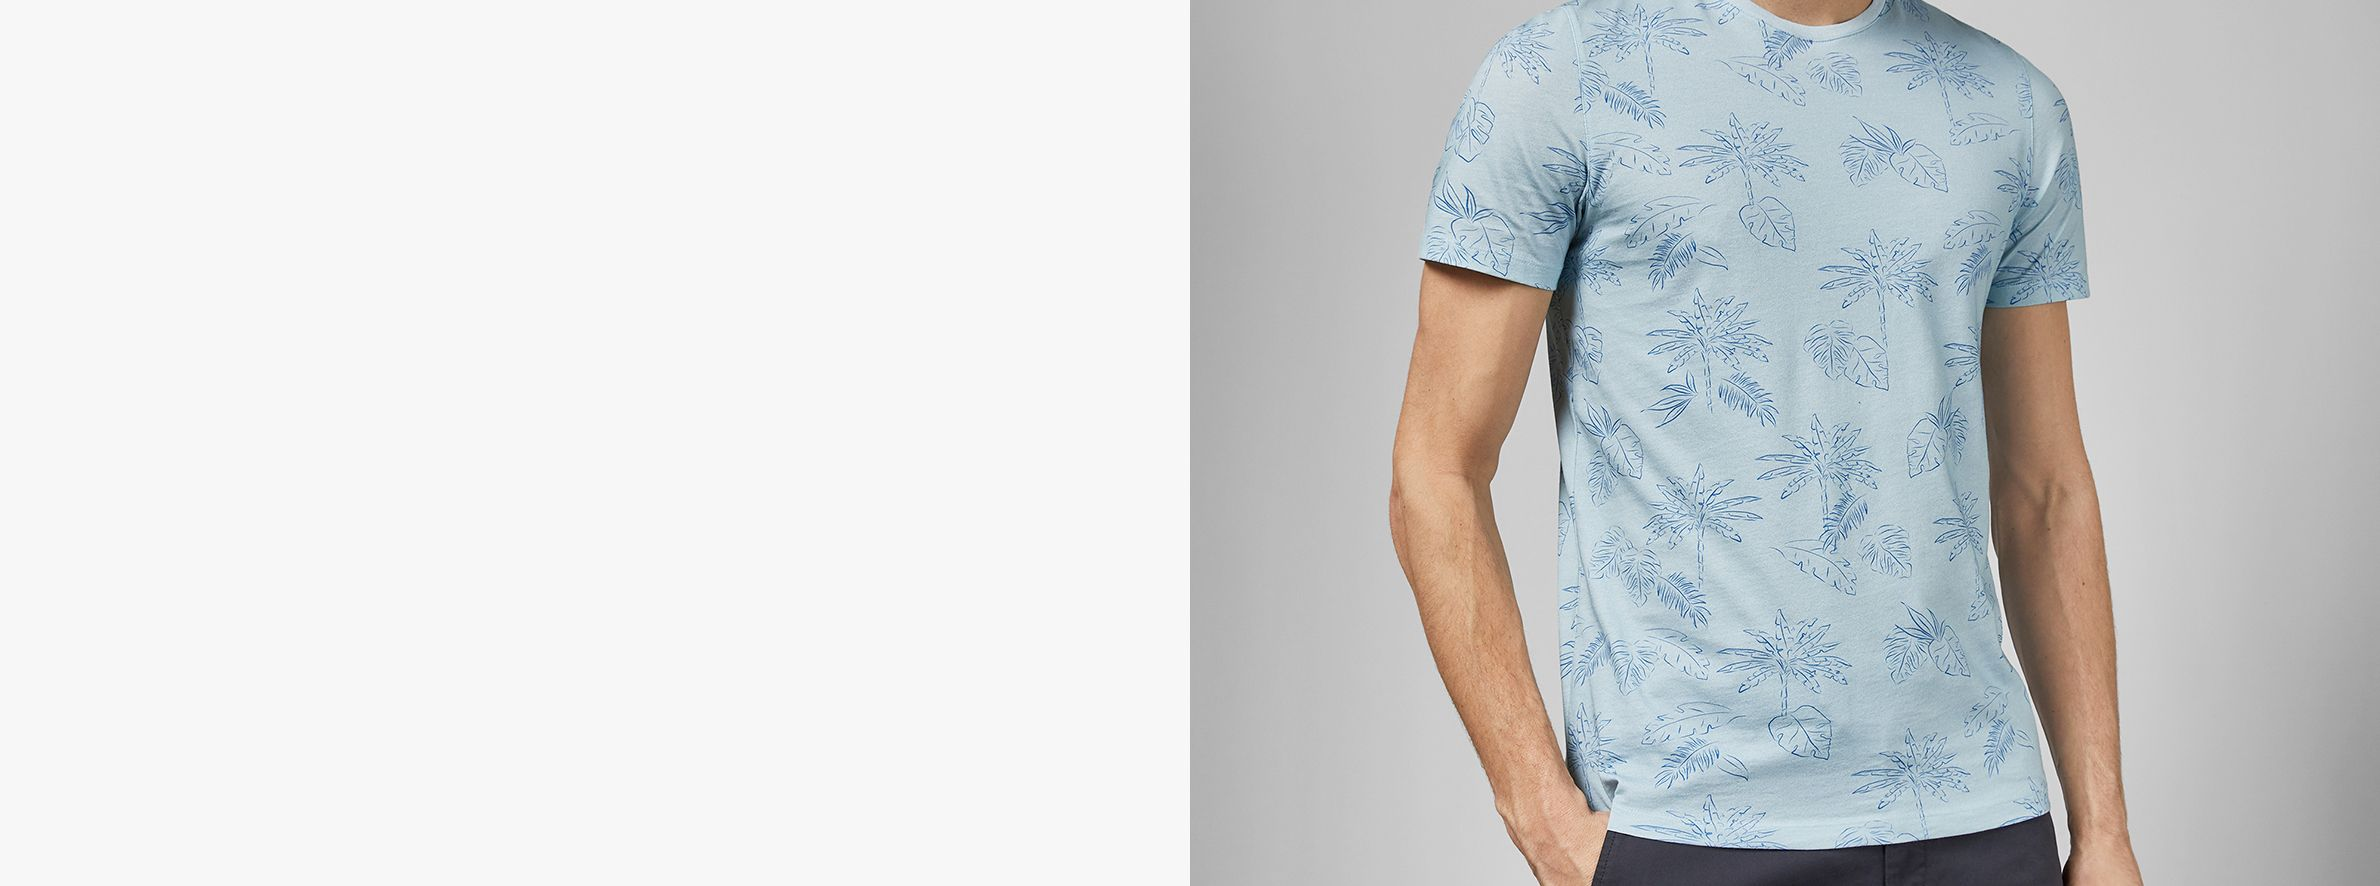 9a16fbd99 Men's T-Shirts | Diesel, Selected Homme, Ted Baker | John Lewis